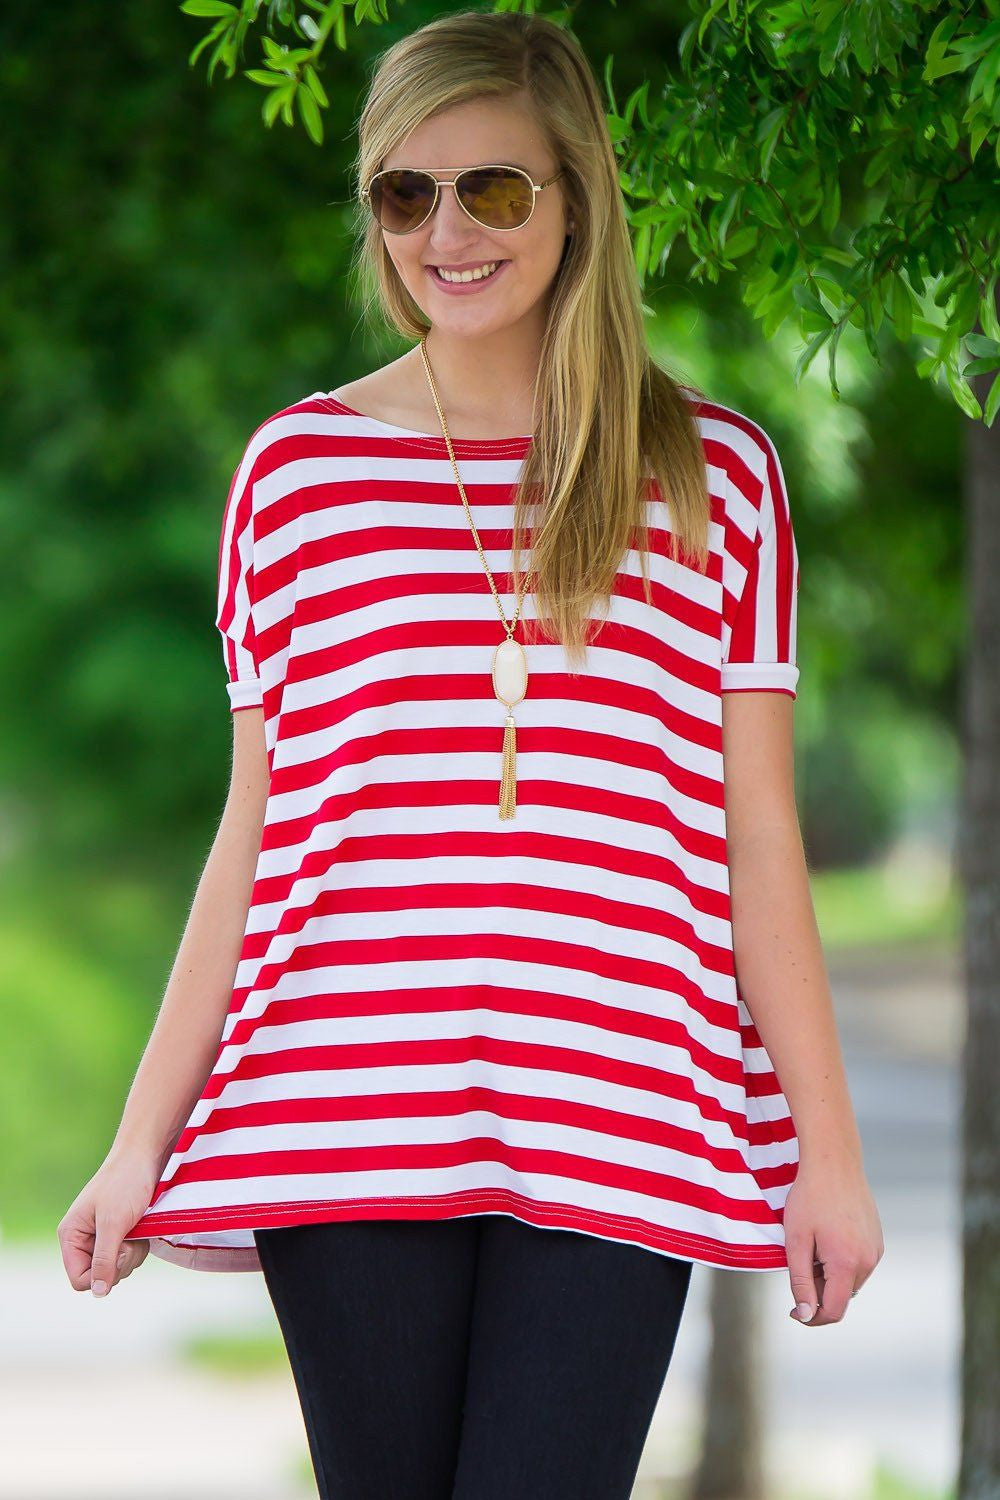 Short Sleeve Thick Stripe Piko Top - Red/White - Piko Clothing